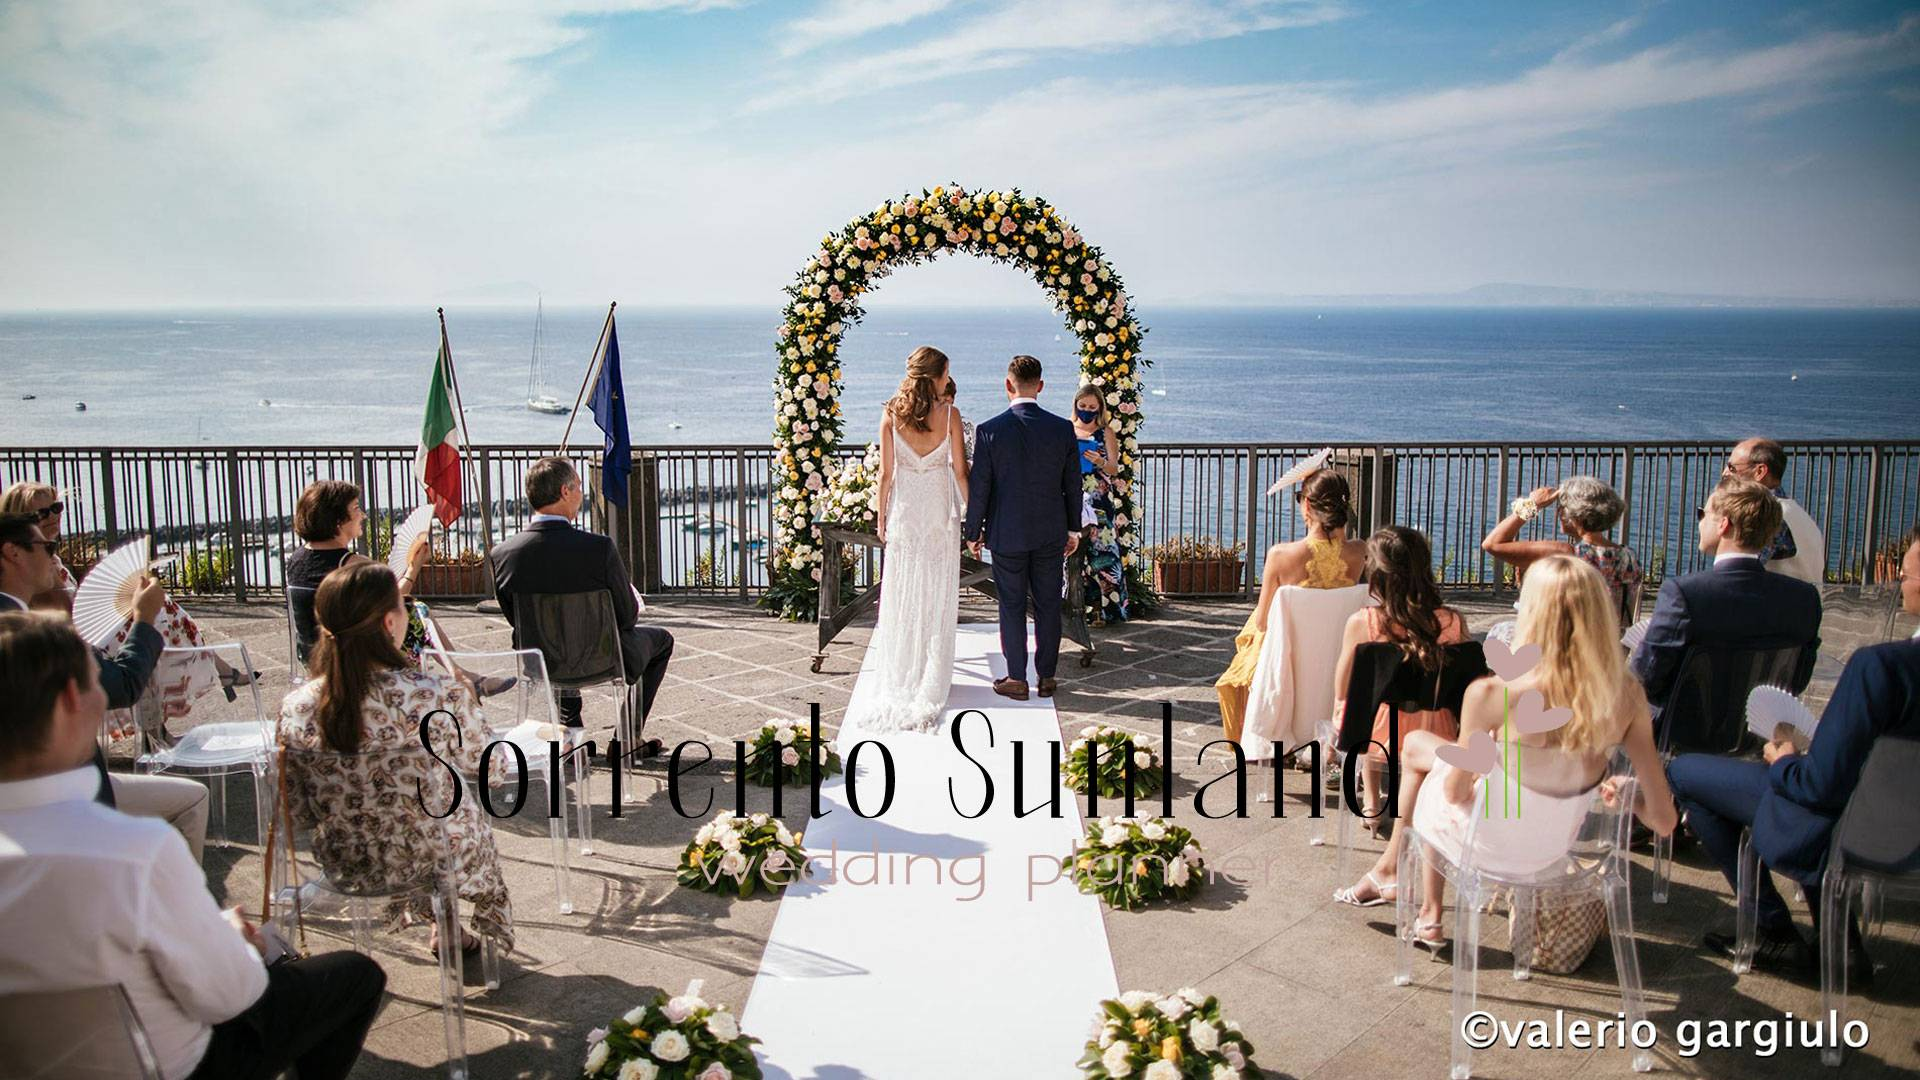 Bride and groom stand at the front of the alter with their backs turned to the guests. In front of the bride and groom stands a flower arch as well as the blue ocean and cloudy sky. Guests watch the bride and groom from their seats placed on both sides of the aisle.